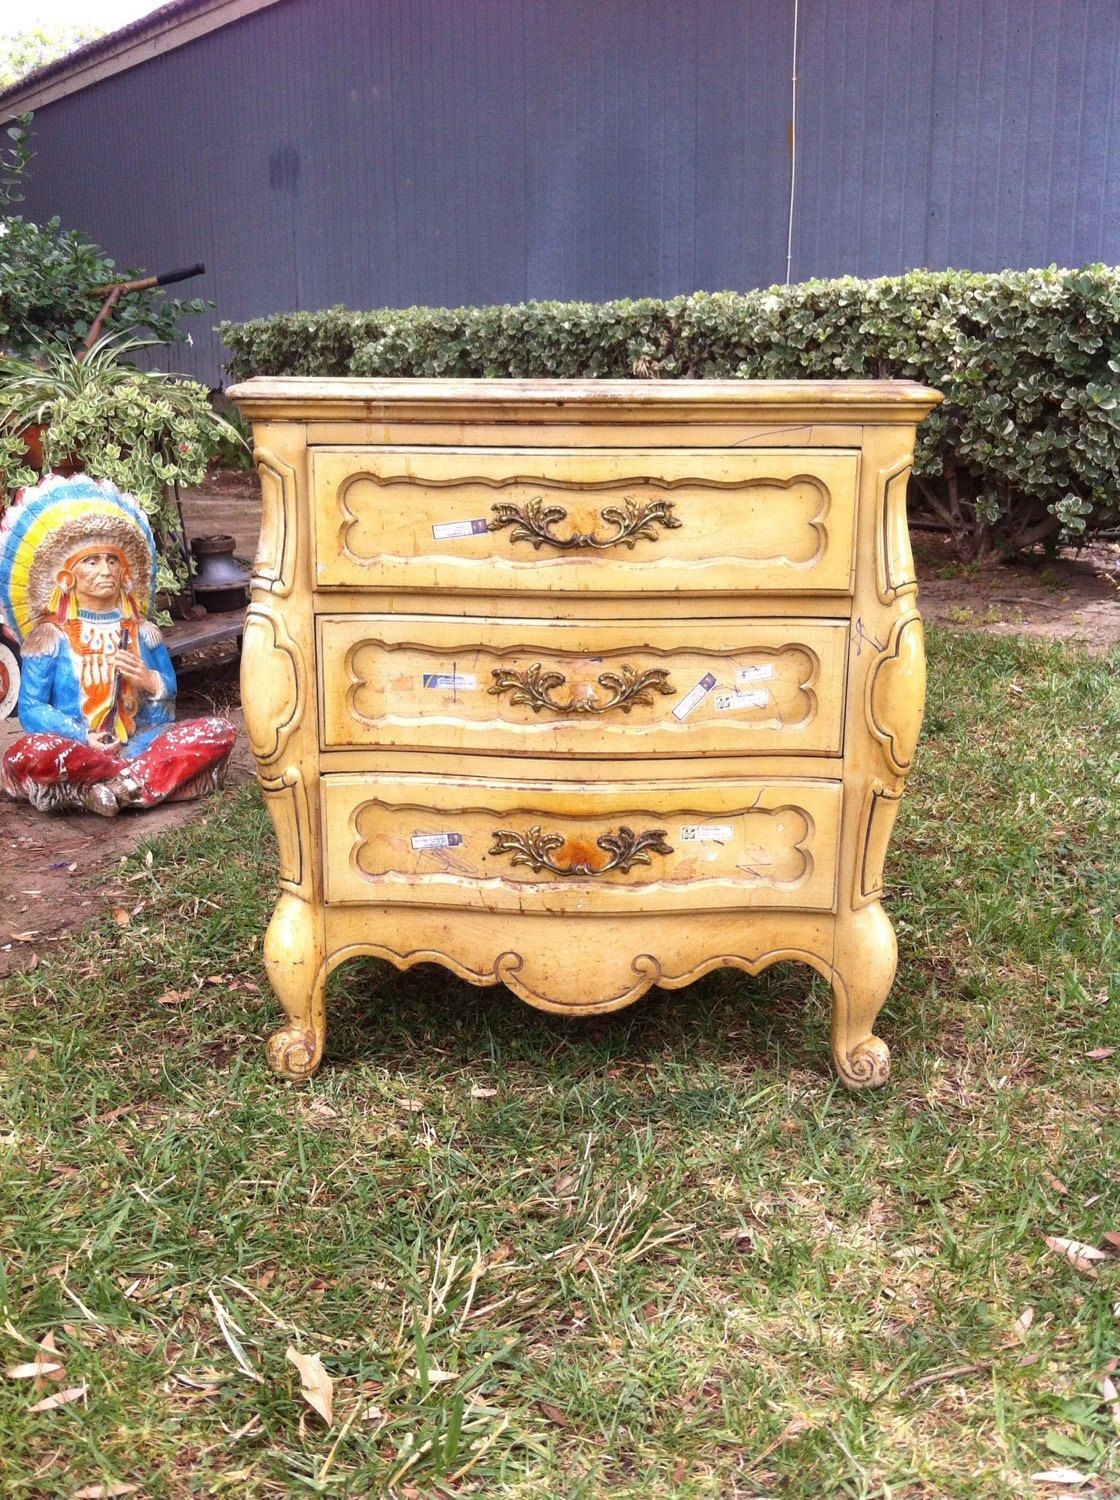 Small Dresser Small Chest Of Drawers Painted Dresser French Provincial Shabby Chic Nightstand Night Shabby Chic Nightstand Small Dresser Small Chest Of Drawers